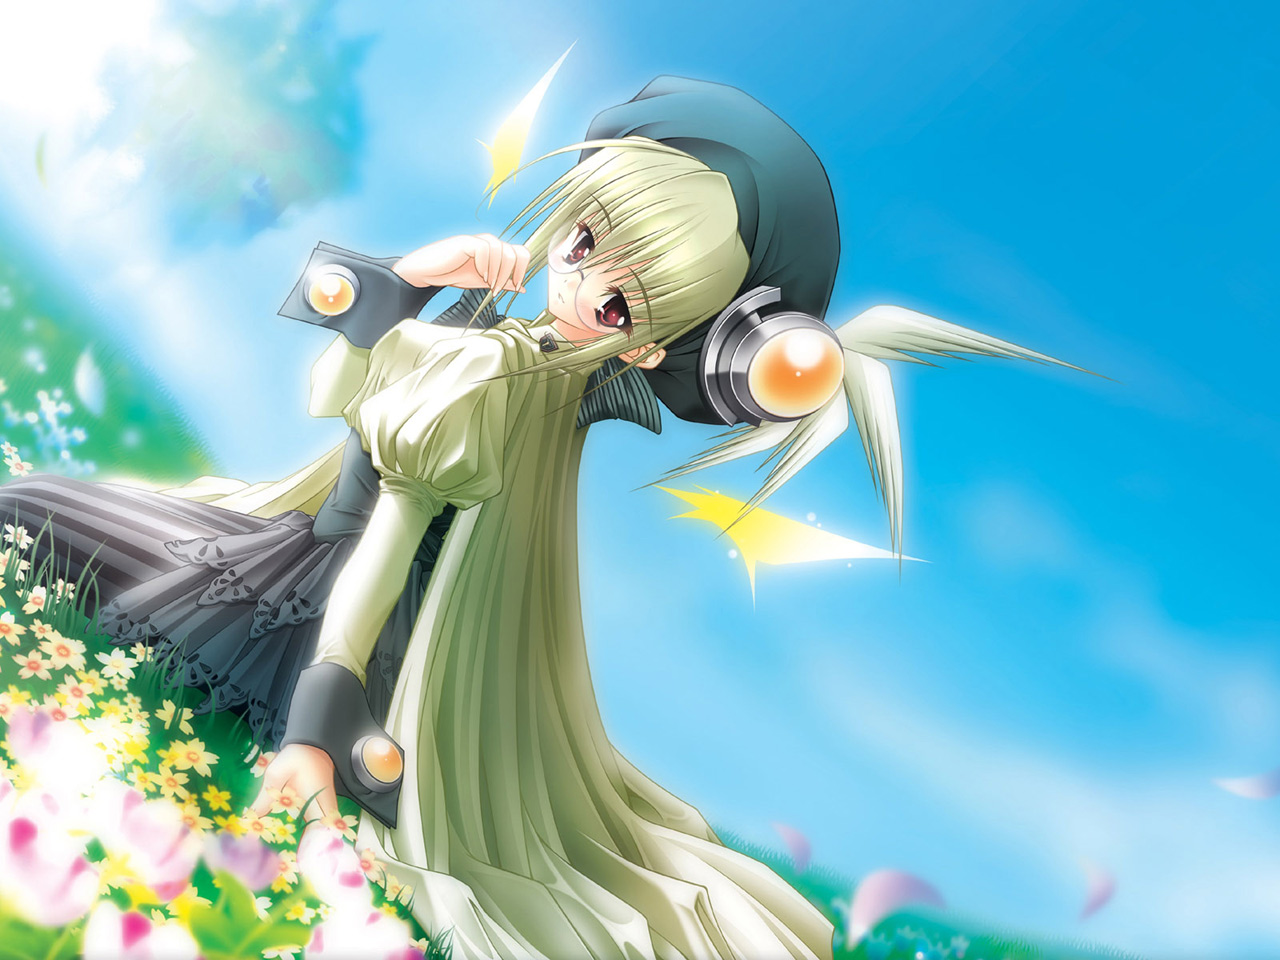 48 cute anime wallpapers for desktop on wallpapersafari - Cute anime desktop wallpaper ...